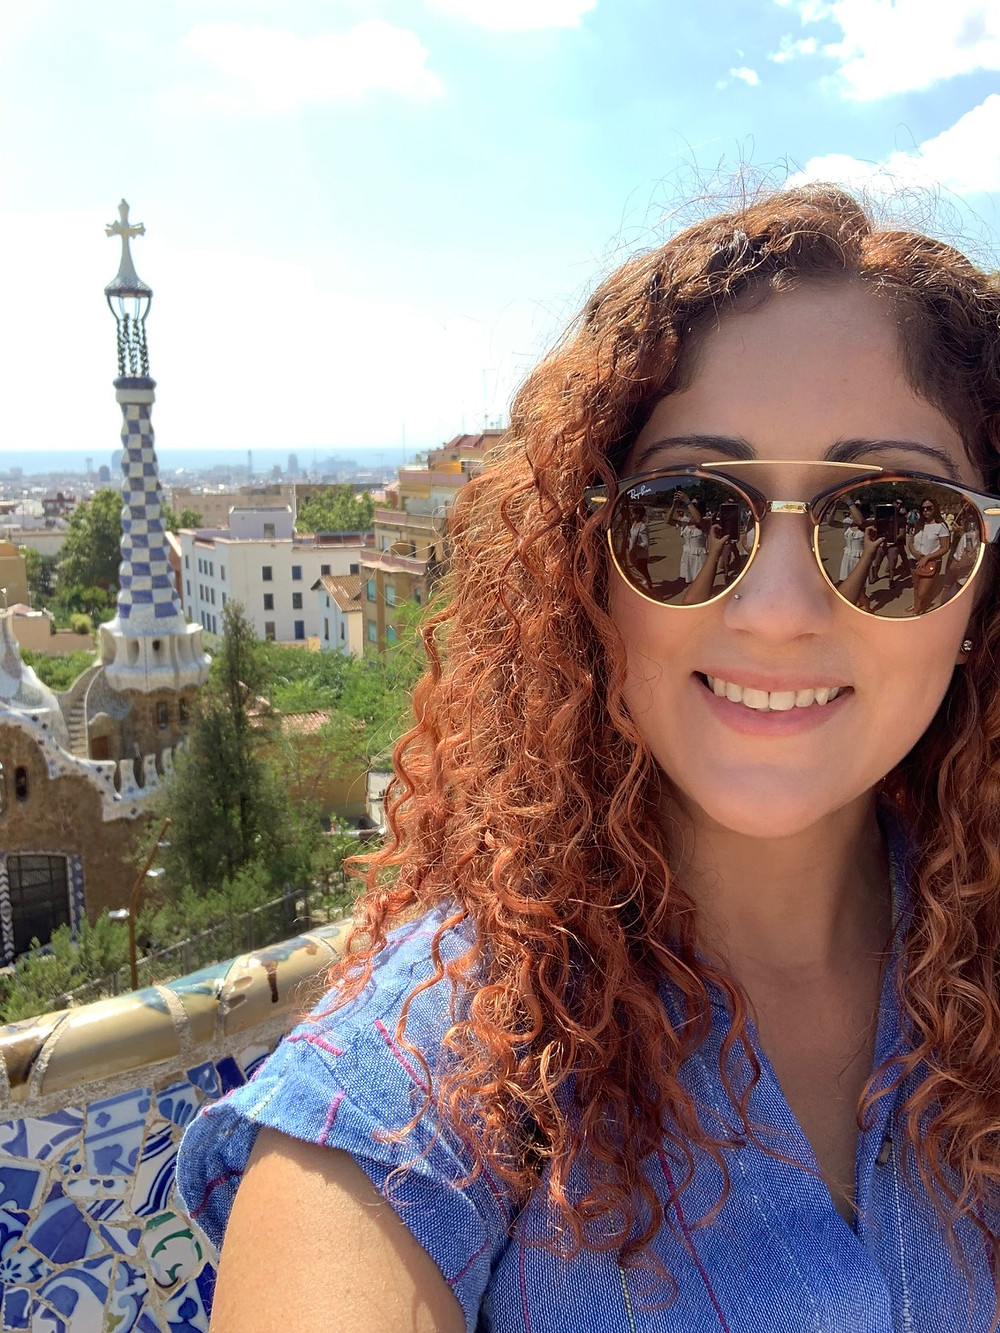 Park Güell, Barcelona trip, stayed in Airbnb, center of the city